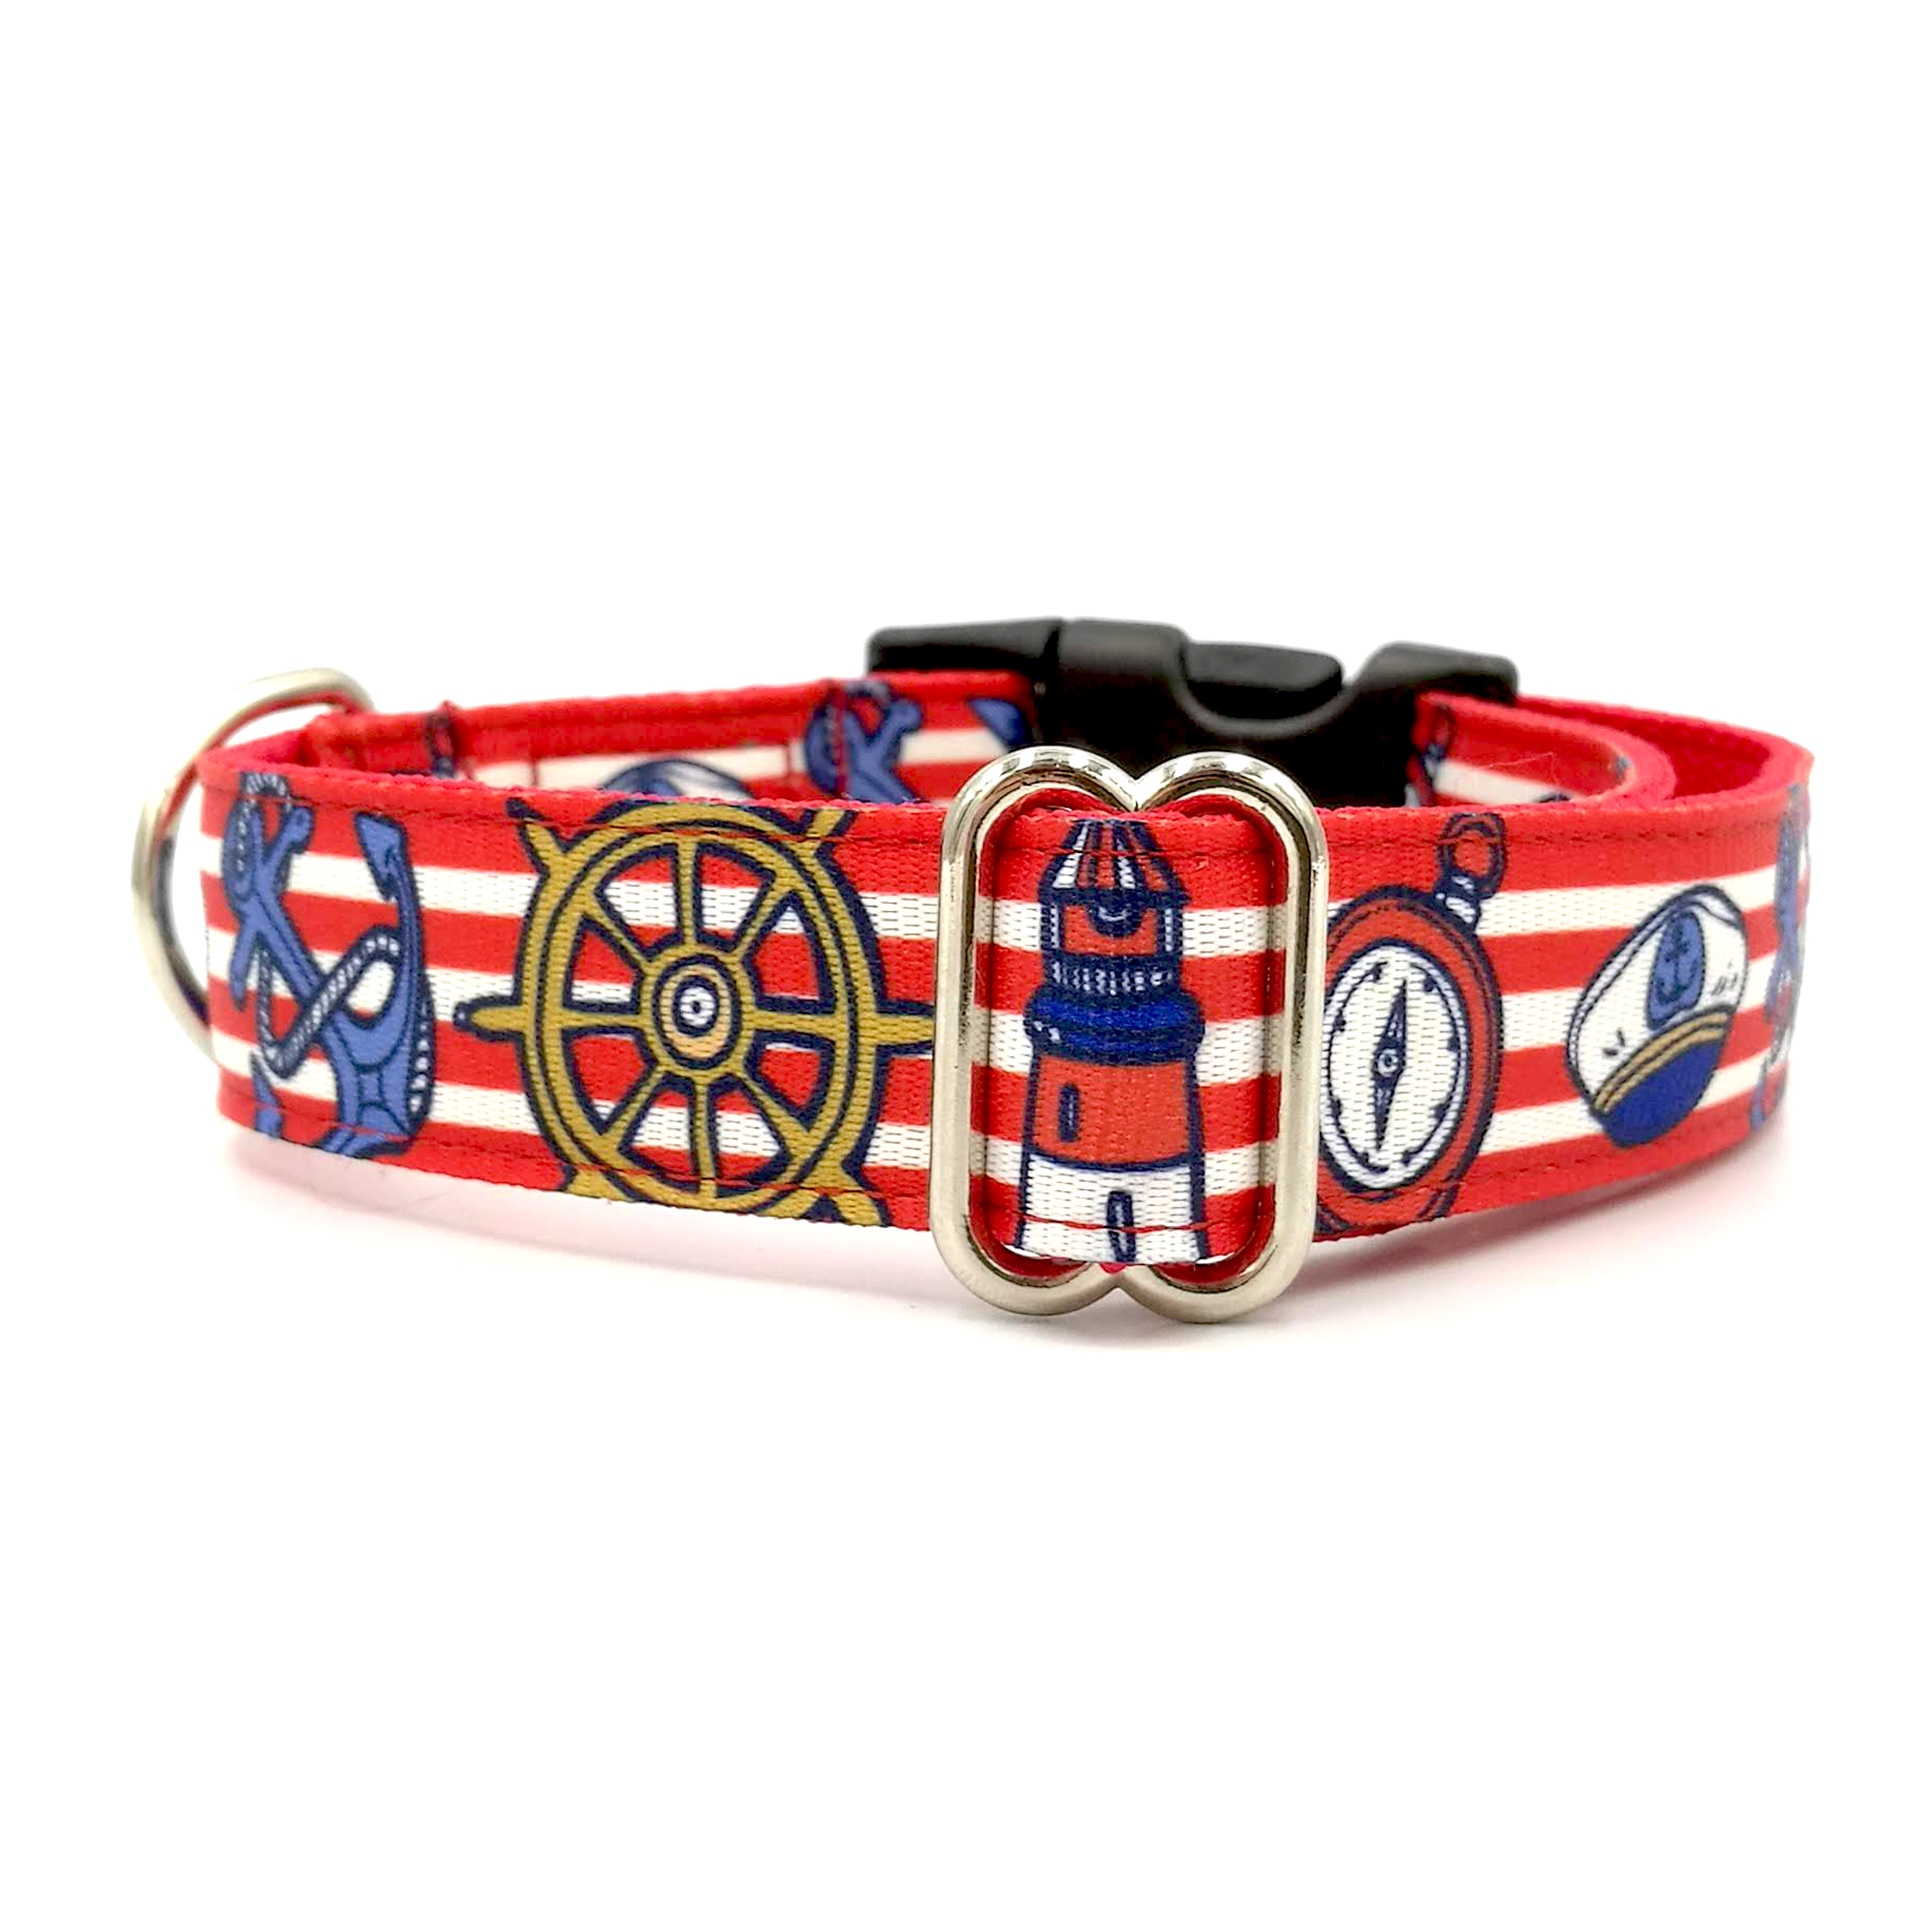 Marine red dog collar